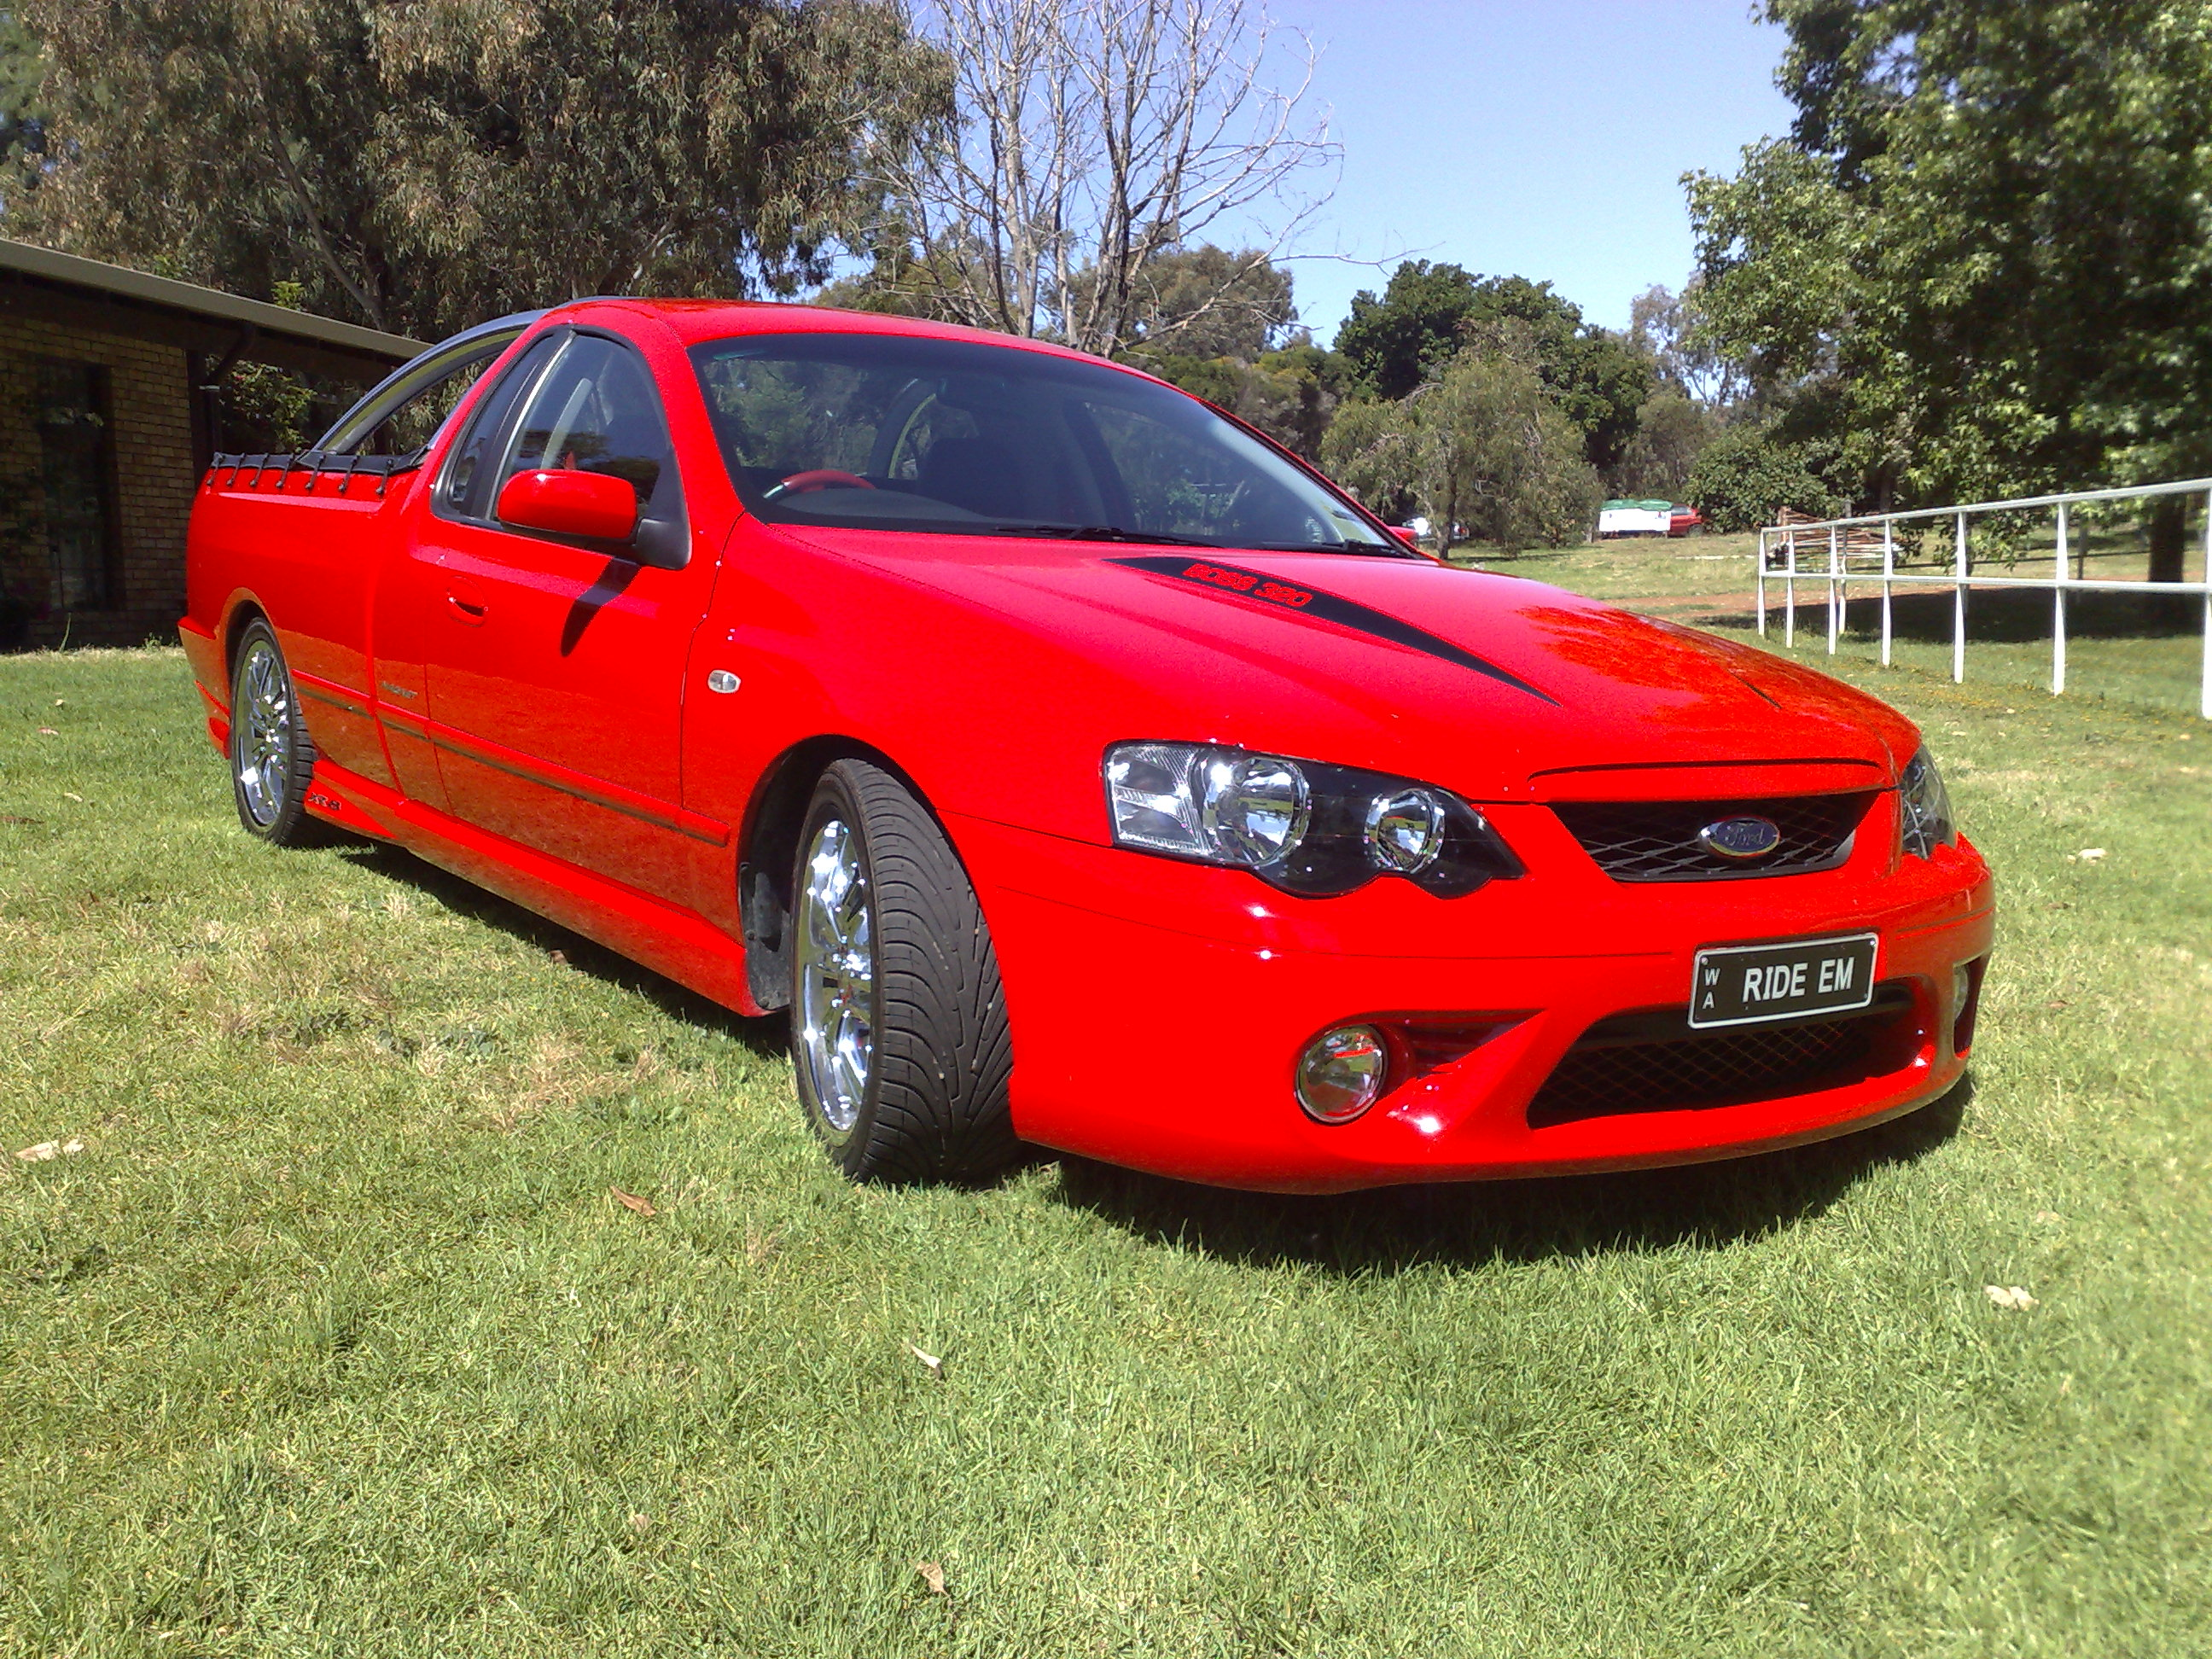 2006 Ford Falcon XR8 Ute